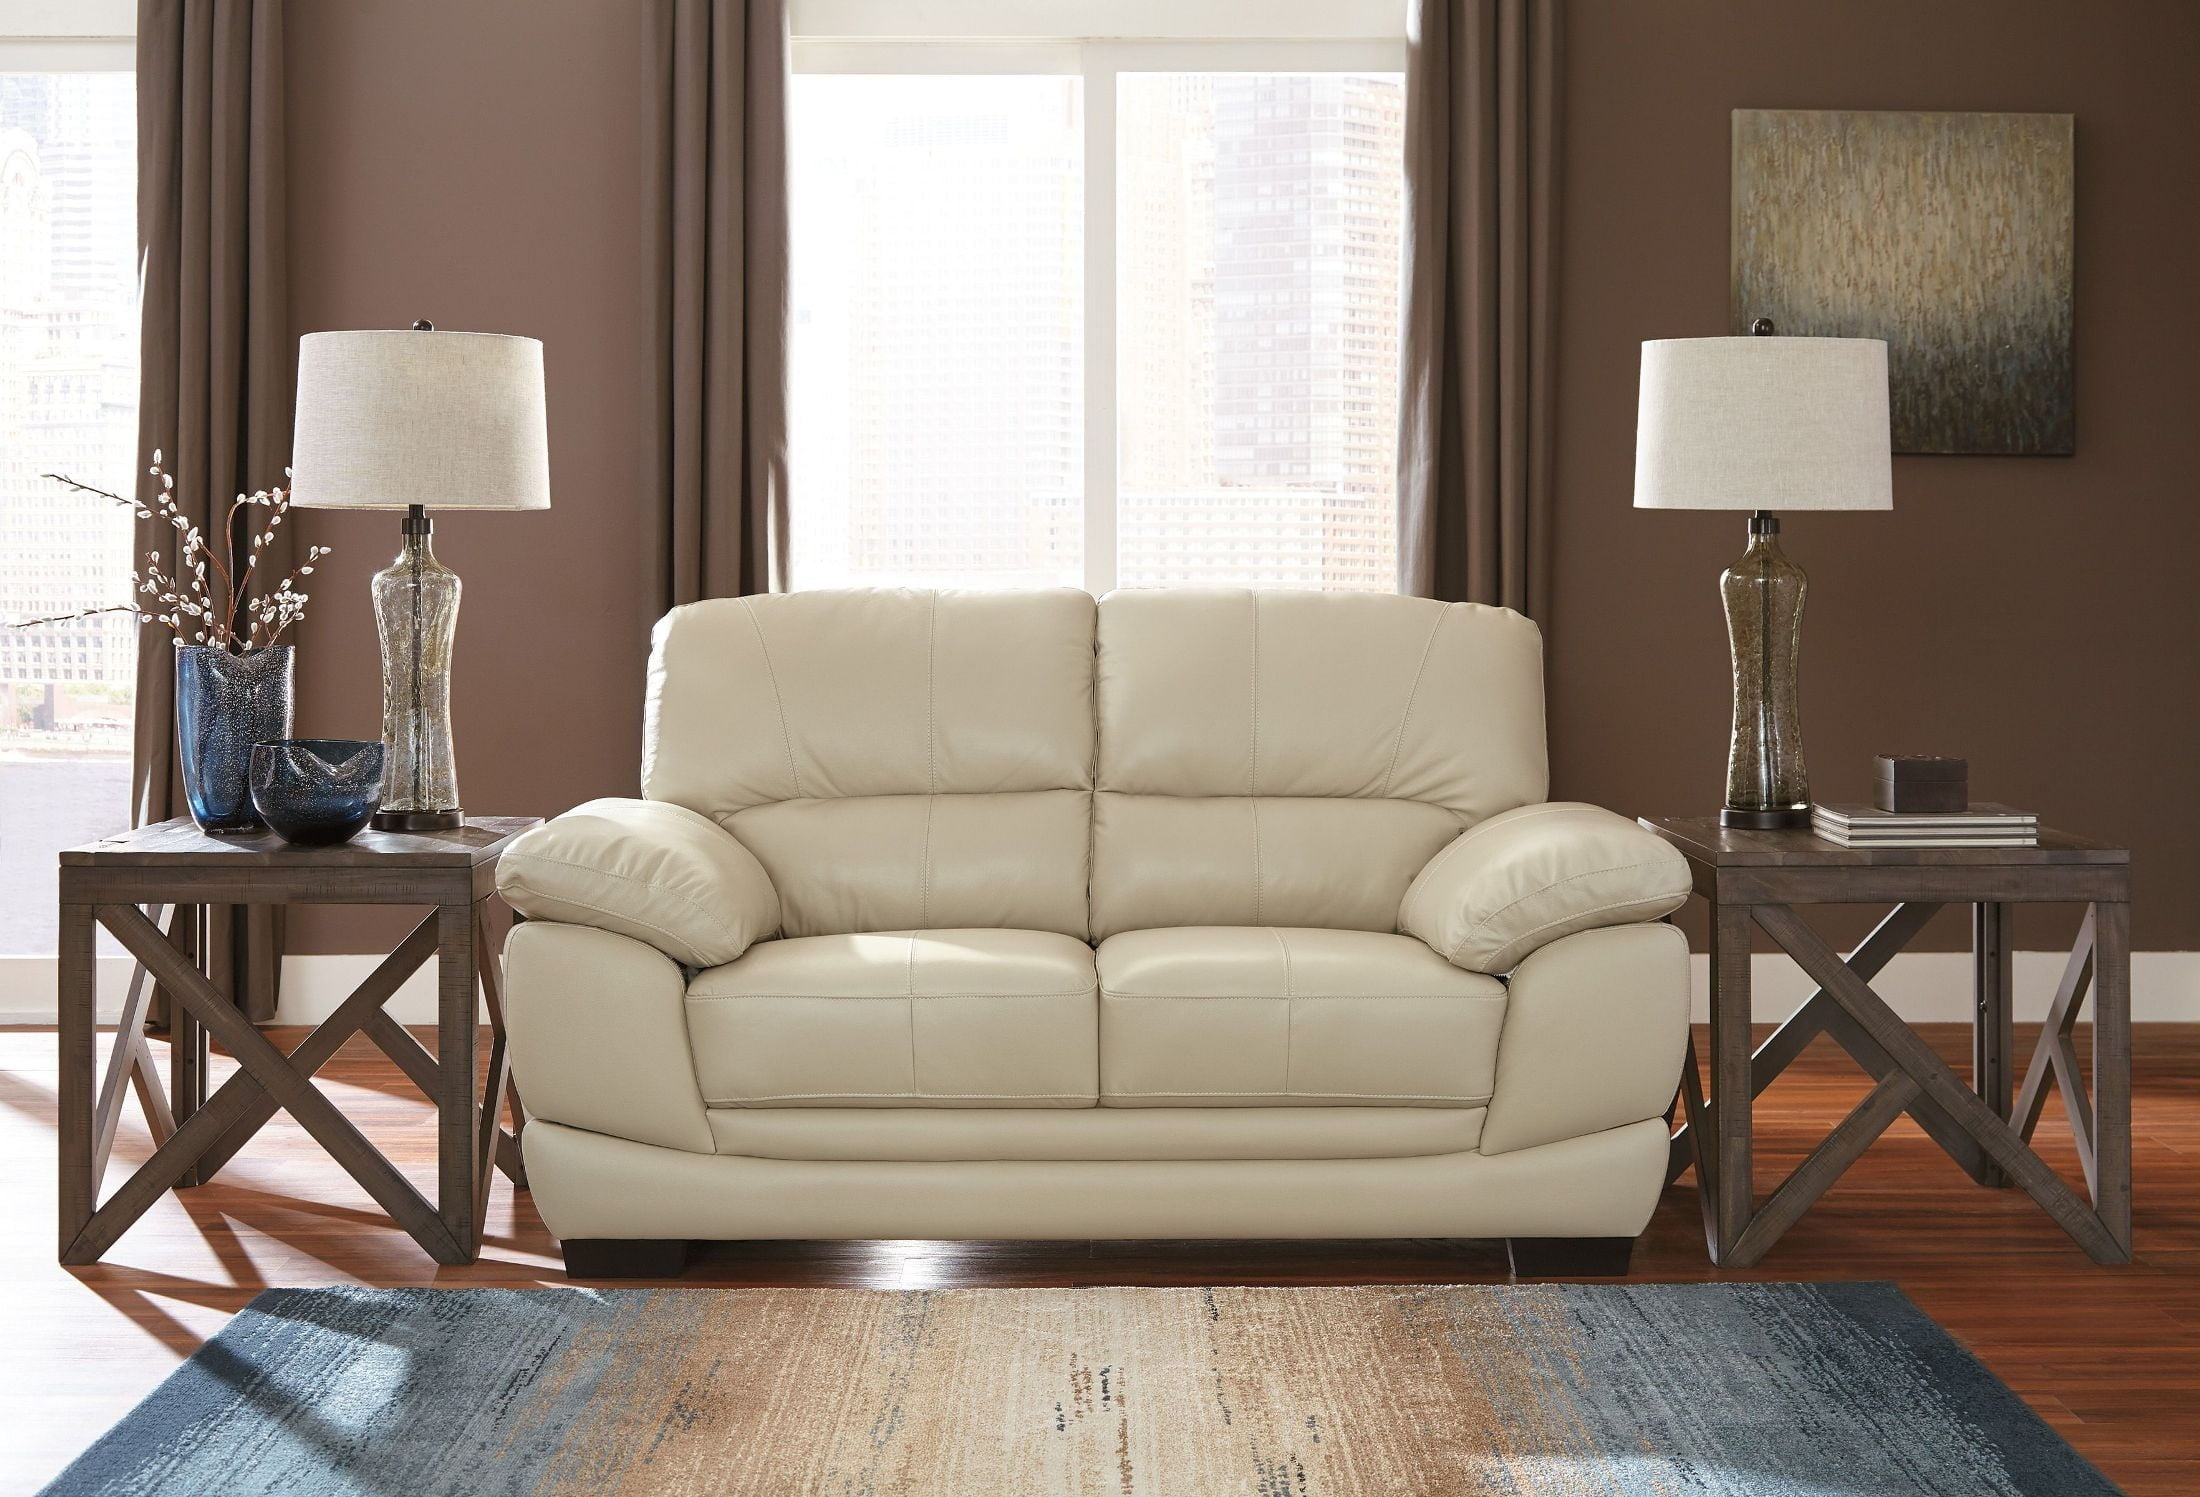 Fontenot Cream Living Room Set from Ashley | Coleman Furniture